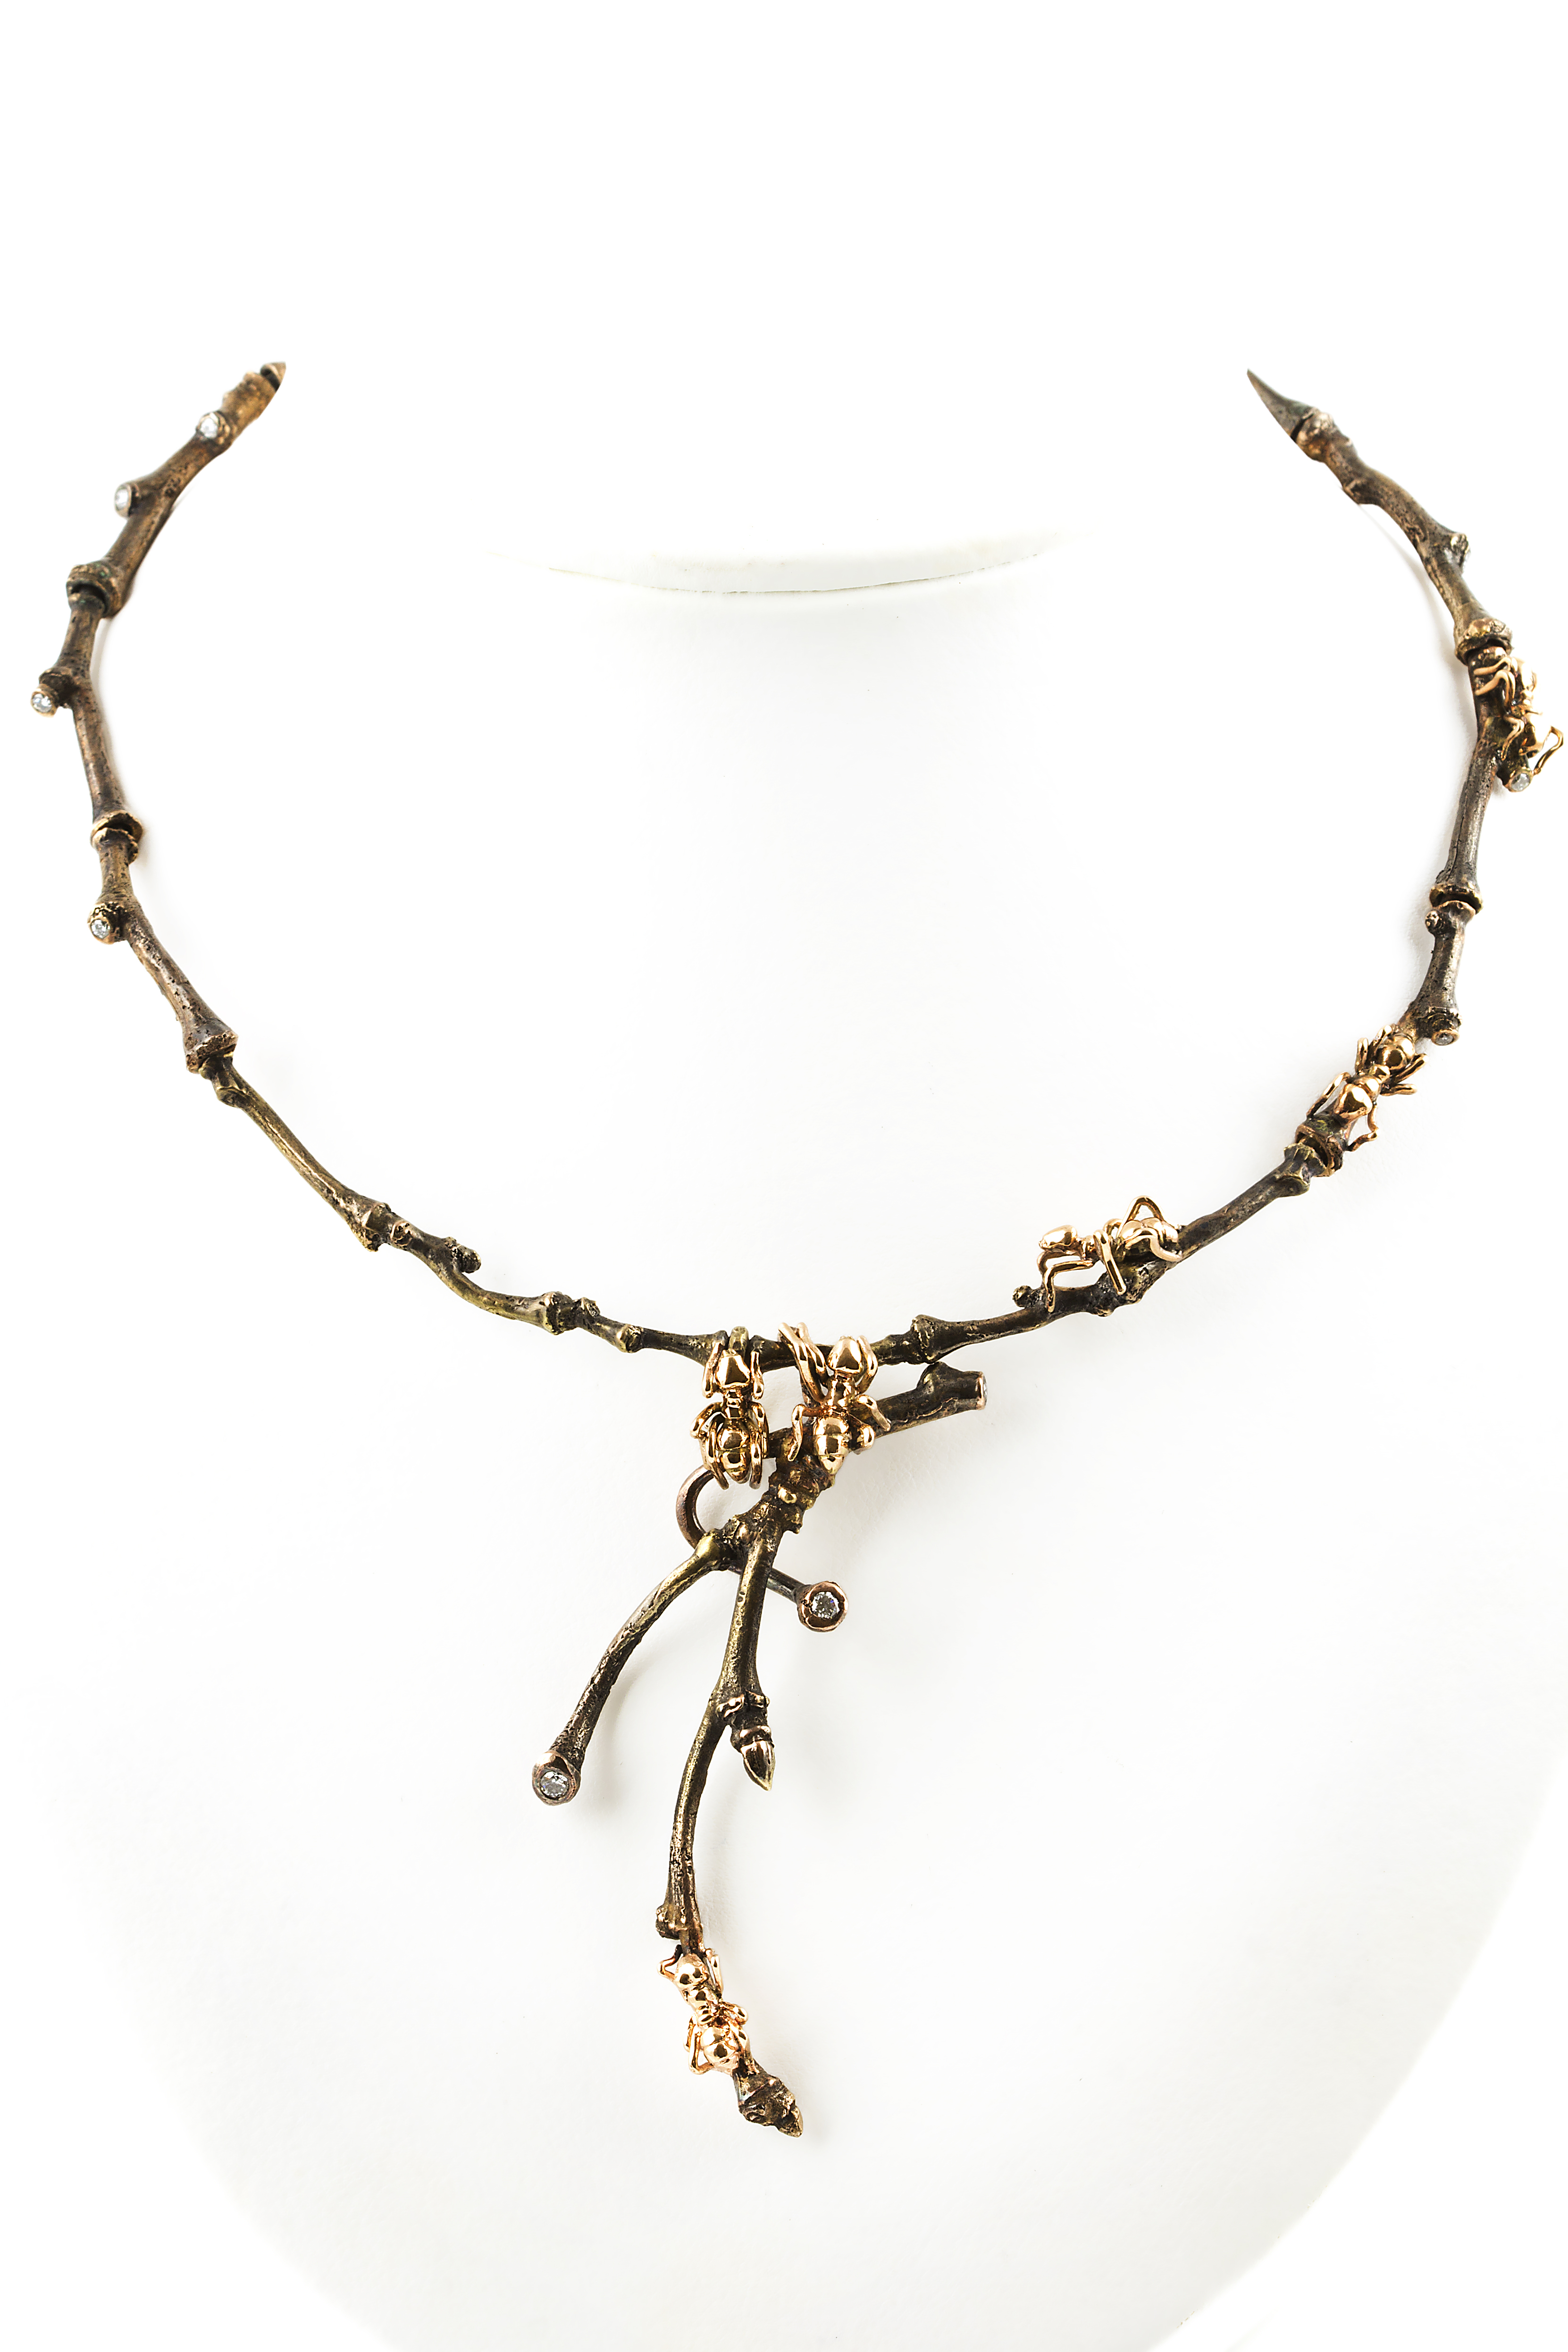 Jewellery by Christopher Bailey